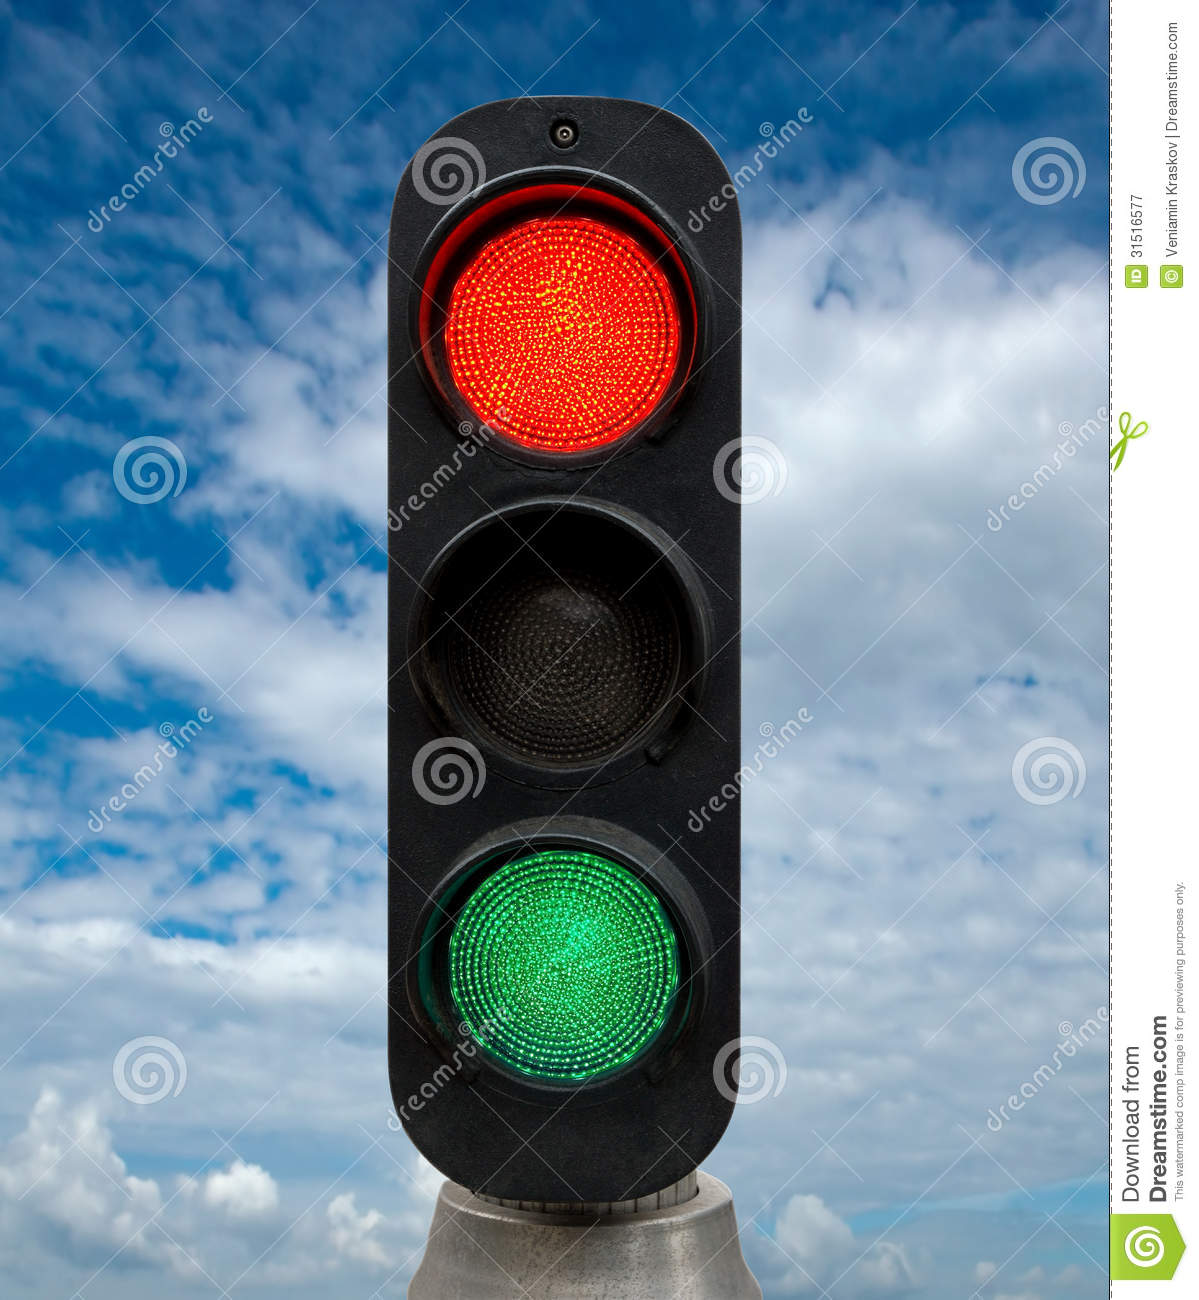 Red And Green Traffic Lights Stock Image